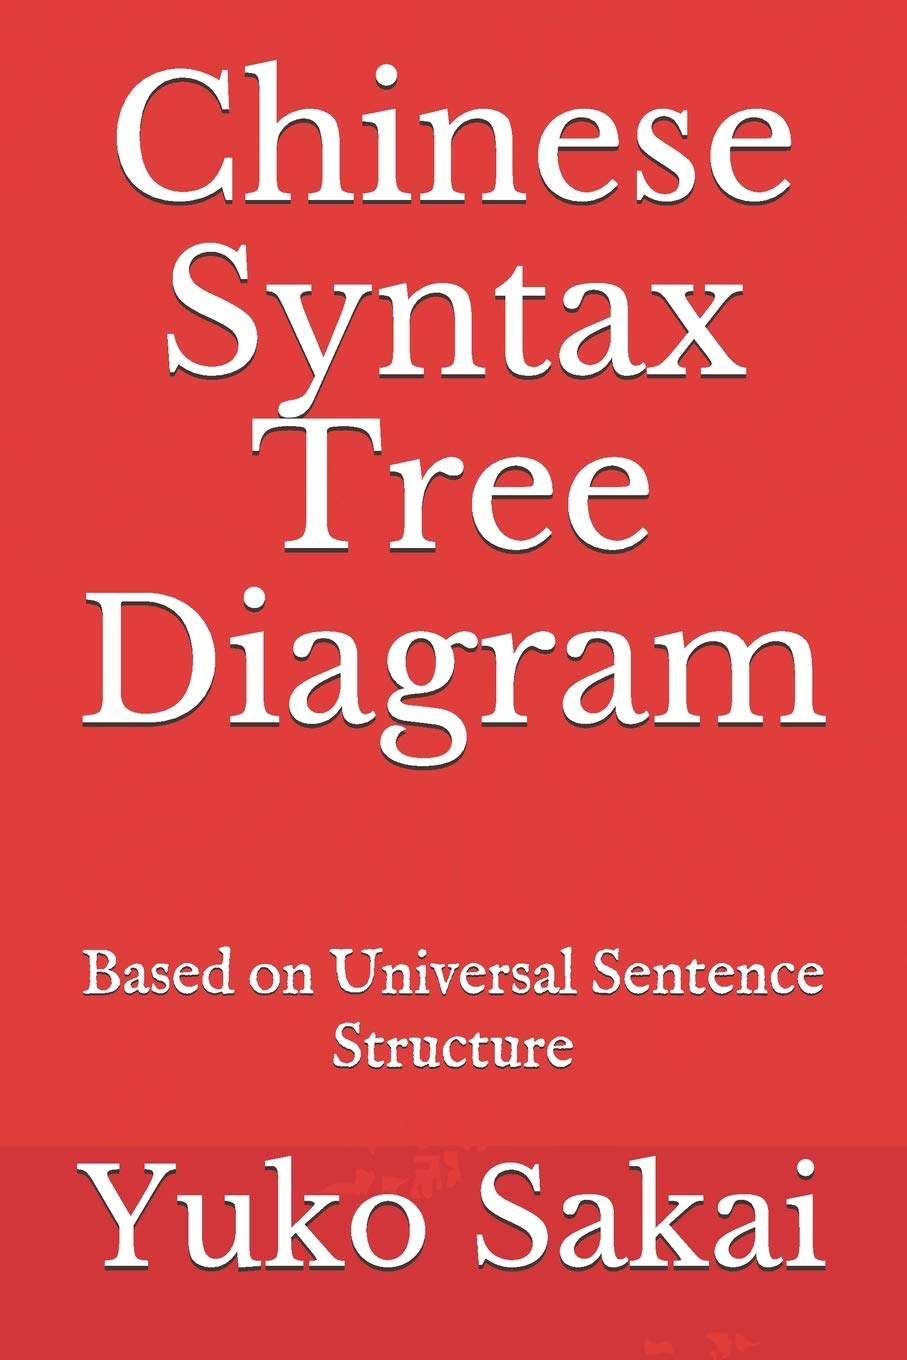 Buy Chinese Syntax Tree Diagram Based On Universal Sentence Structure 7 Sentence Generation Book Online At Low Prices In India Chinese Syntax Tree Diagram Based On Universal Sentence Structure 7 Sentence